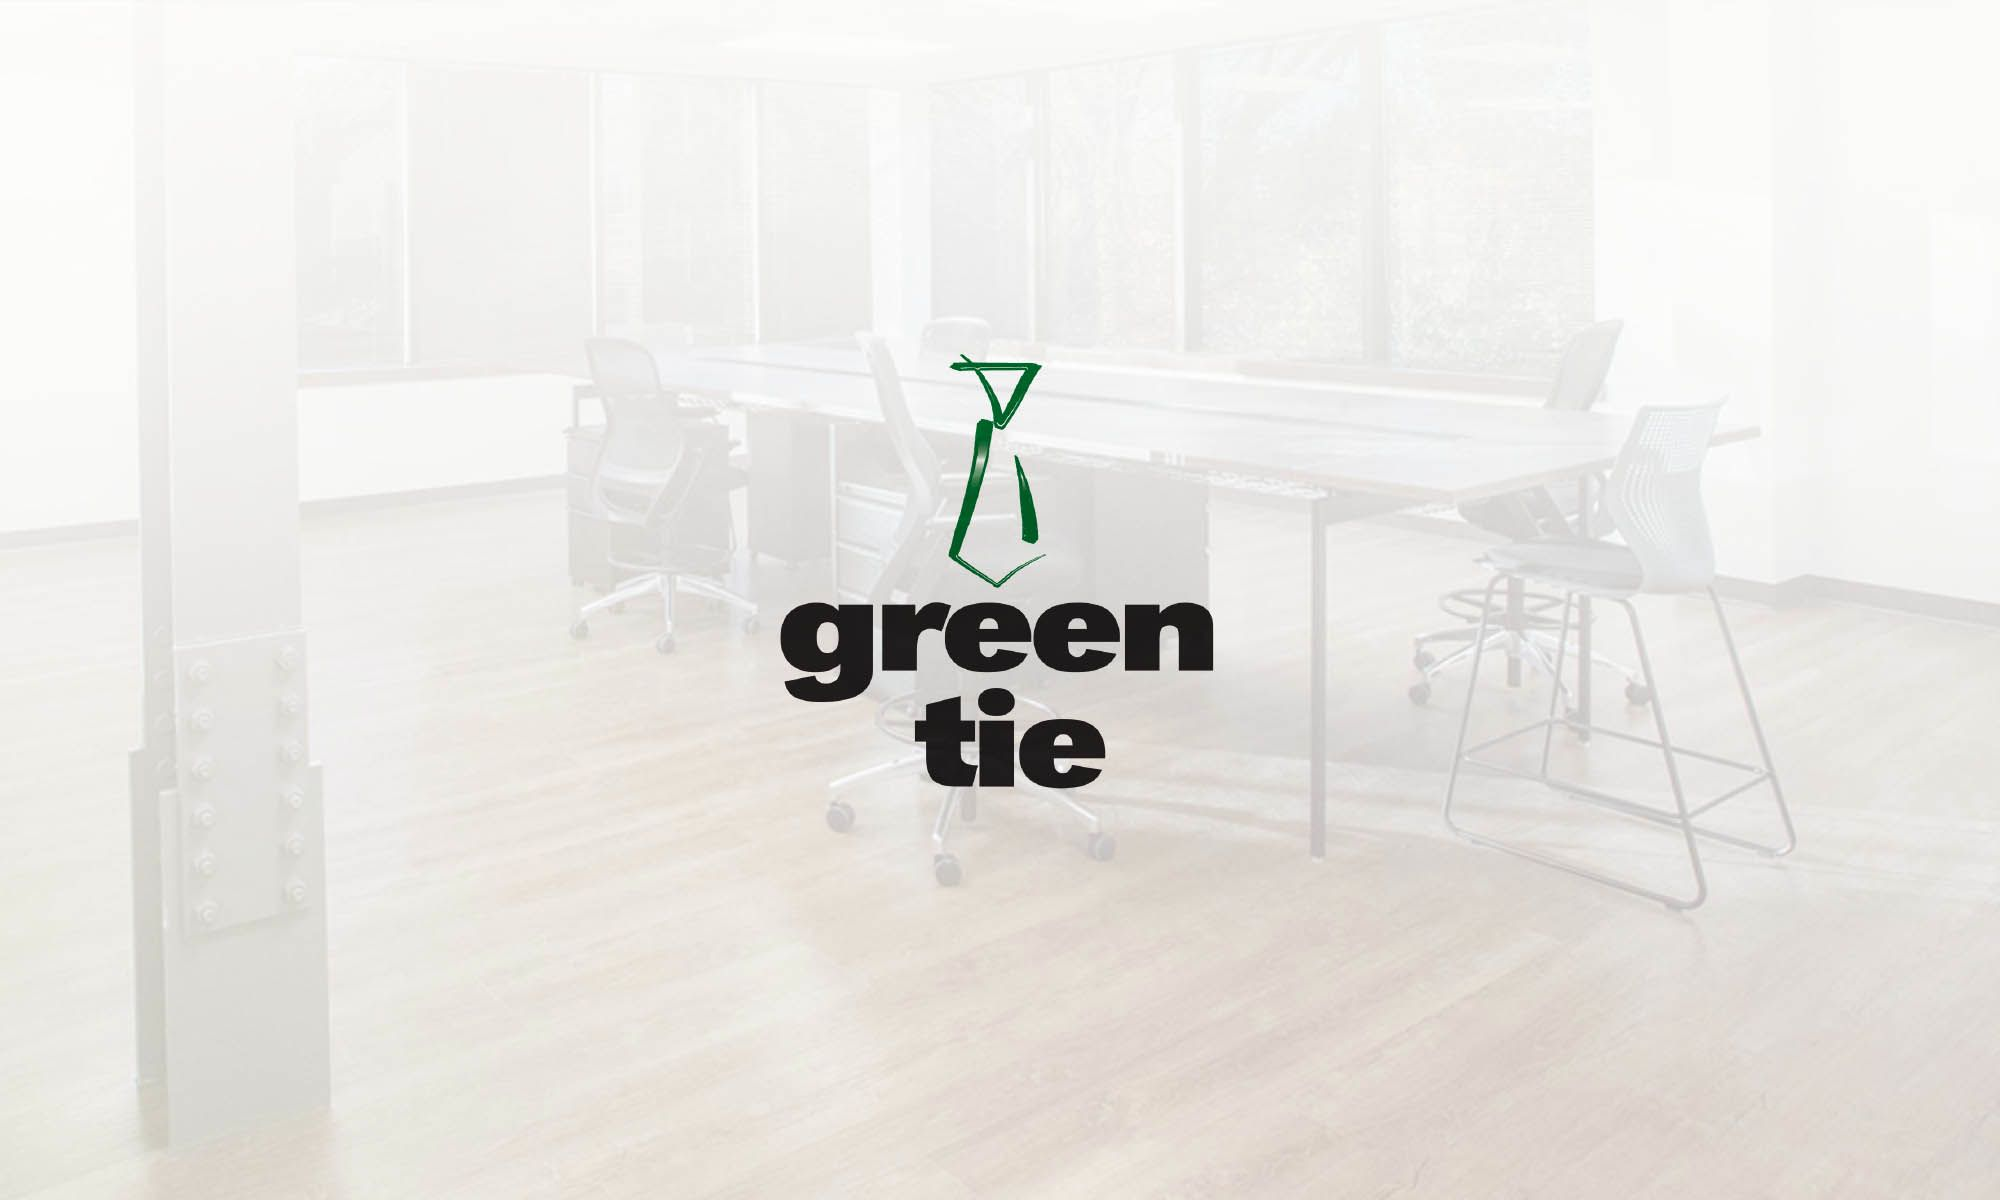 Edison Spaces Welcomes GreenTie.com to Its Johnson County Office Space